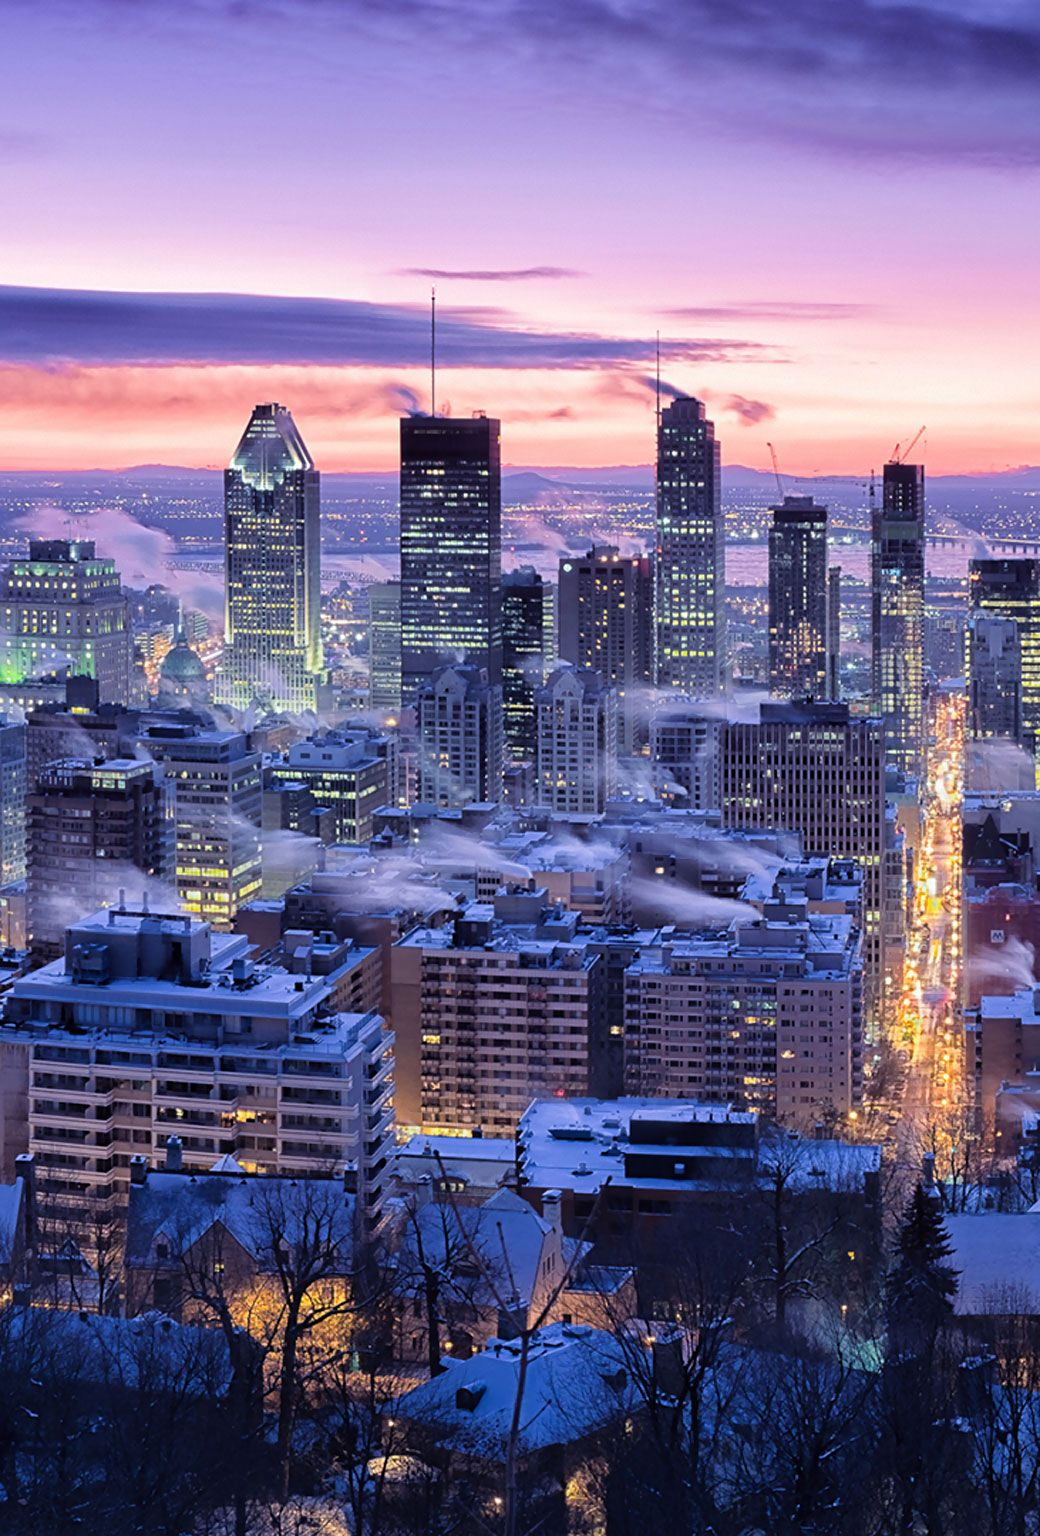 Pin by Agata on Inspiracja Montreal, Canada travel